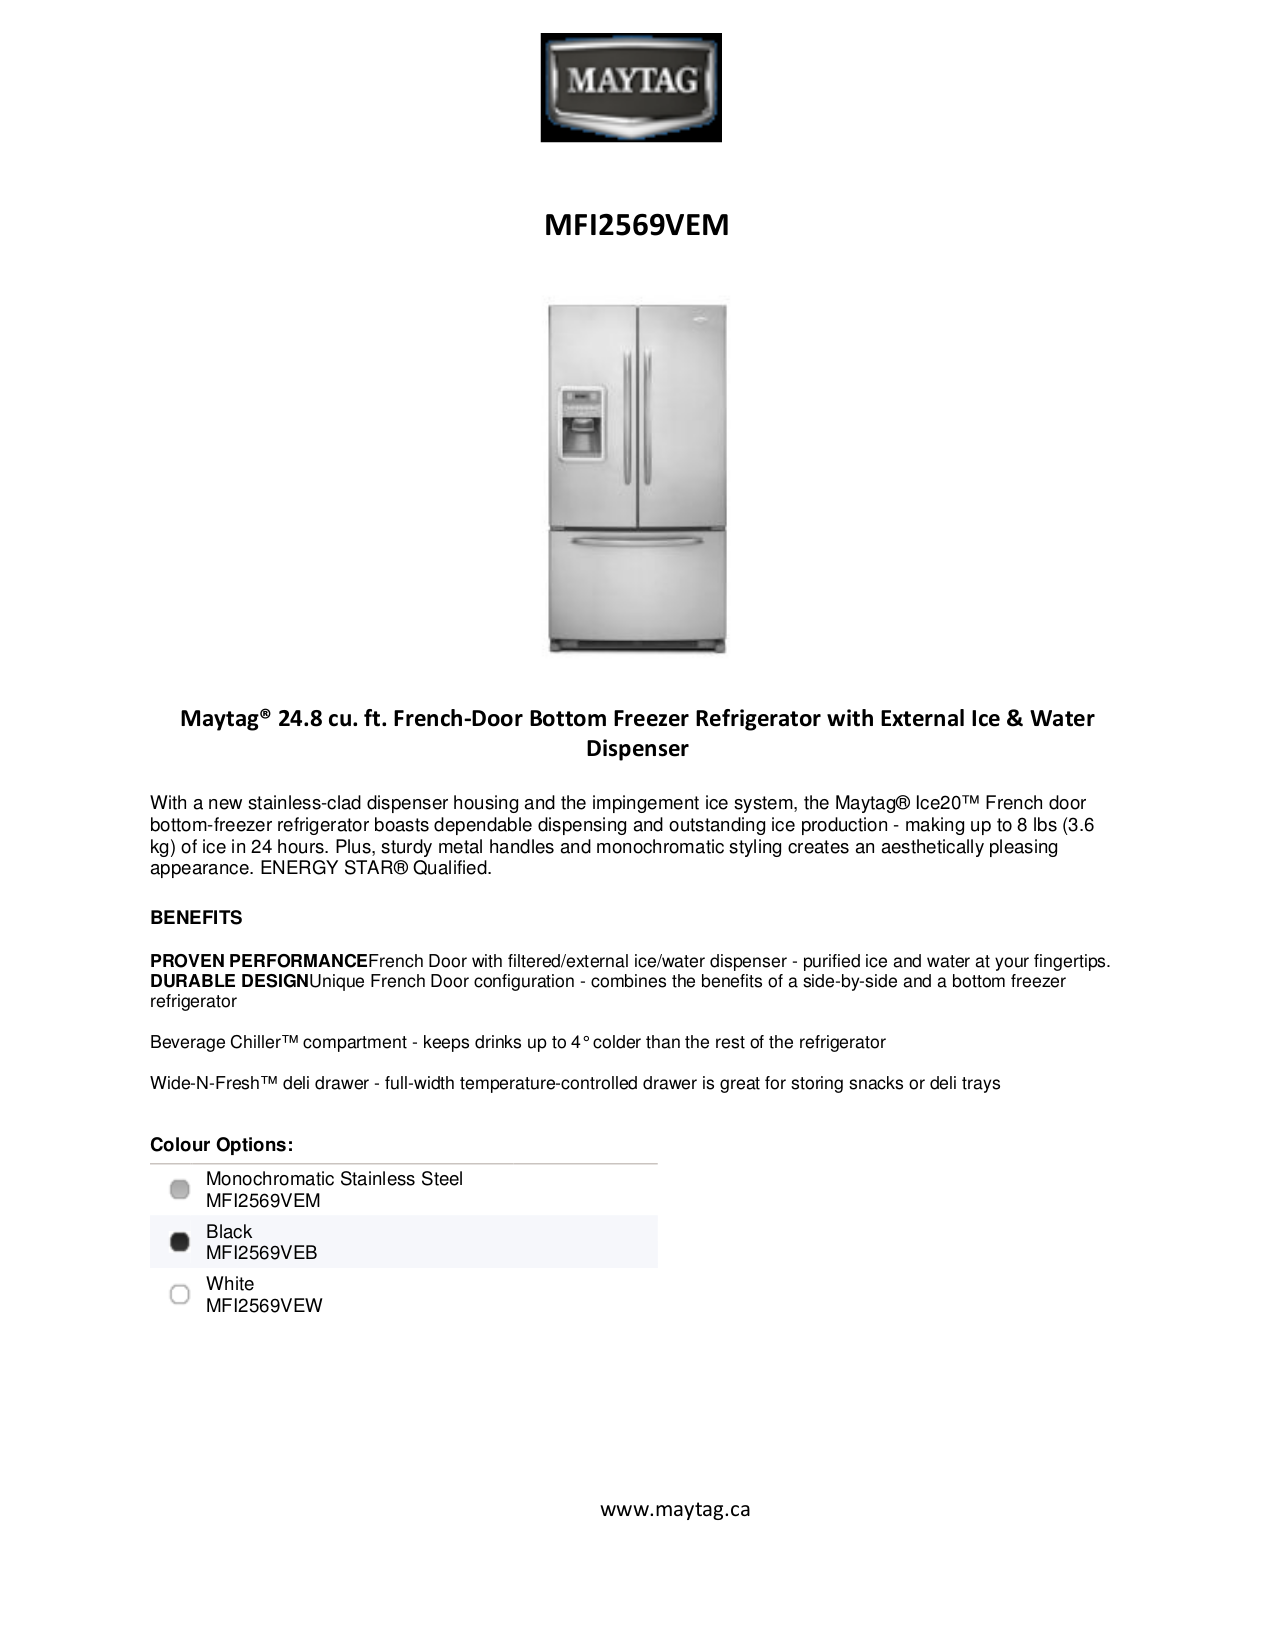 Download Free Pdf For Maytag Mfi2569vem Refrigerator Manual Schematic